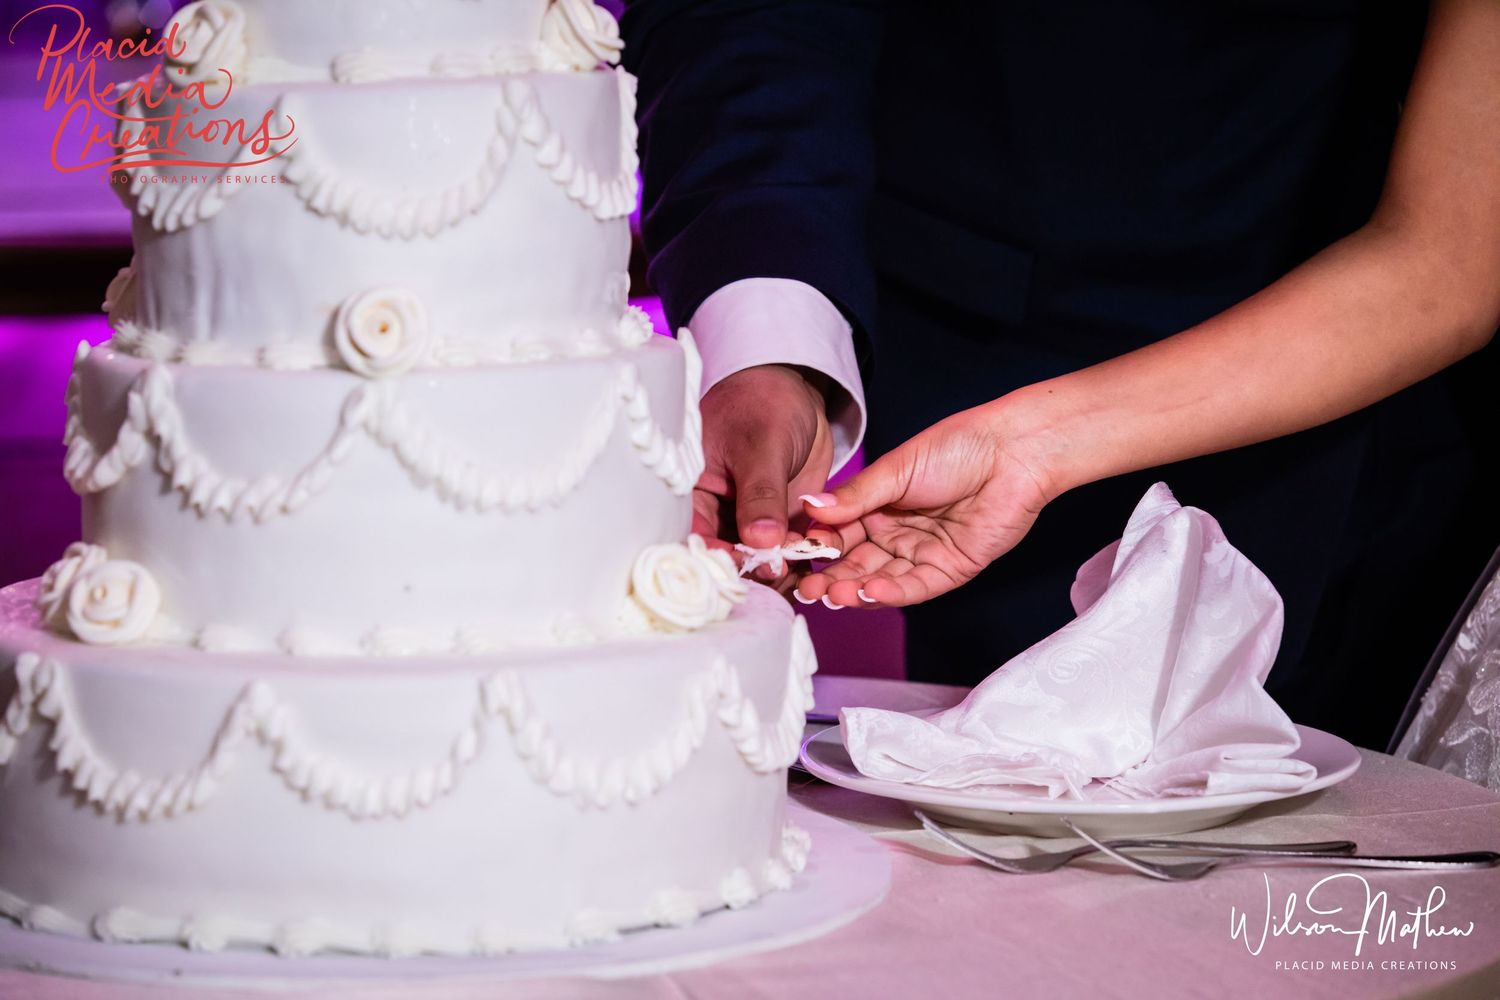 wedding-cake-bride-and-groom-photograph-longisland